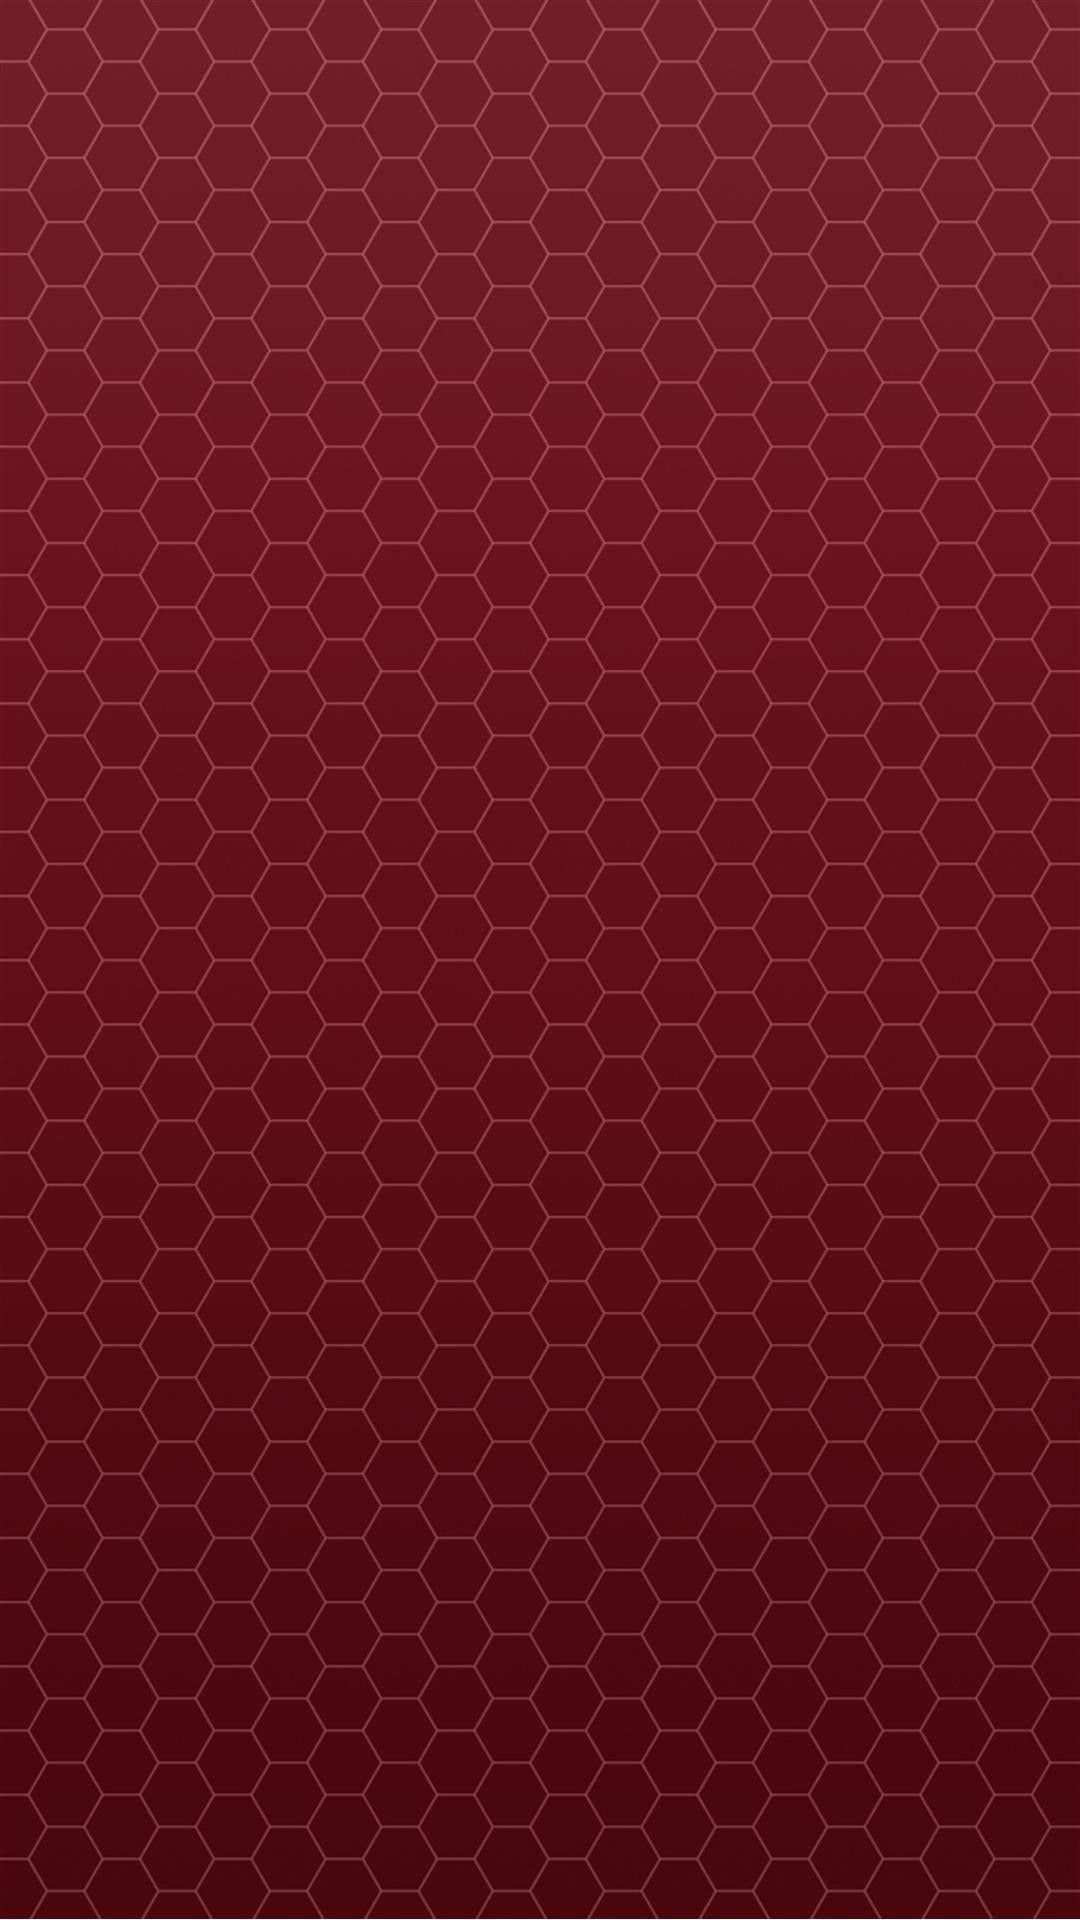 Honeycomb Red Pattern Smartphone Wallpaper And Lockscreen Hd Check More At Https Phonewallp Com Honeycomb Re Honeycomb Wallpaper Iphone Wallpaper Red Pattern